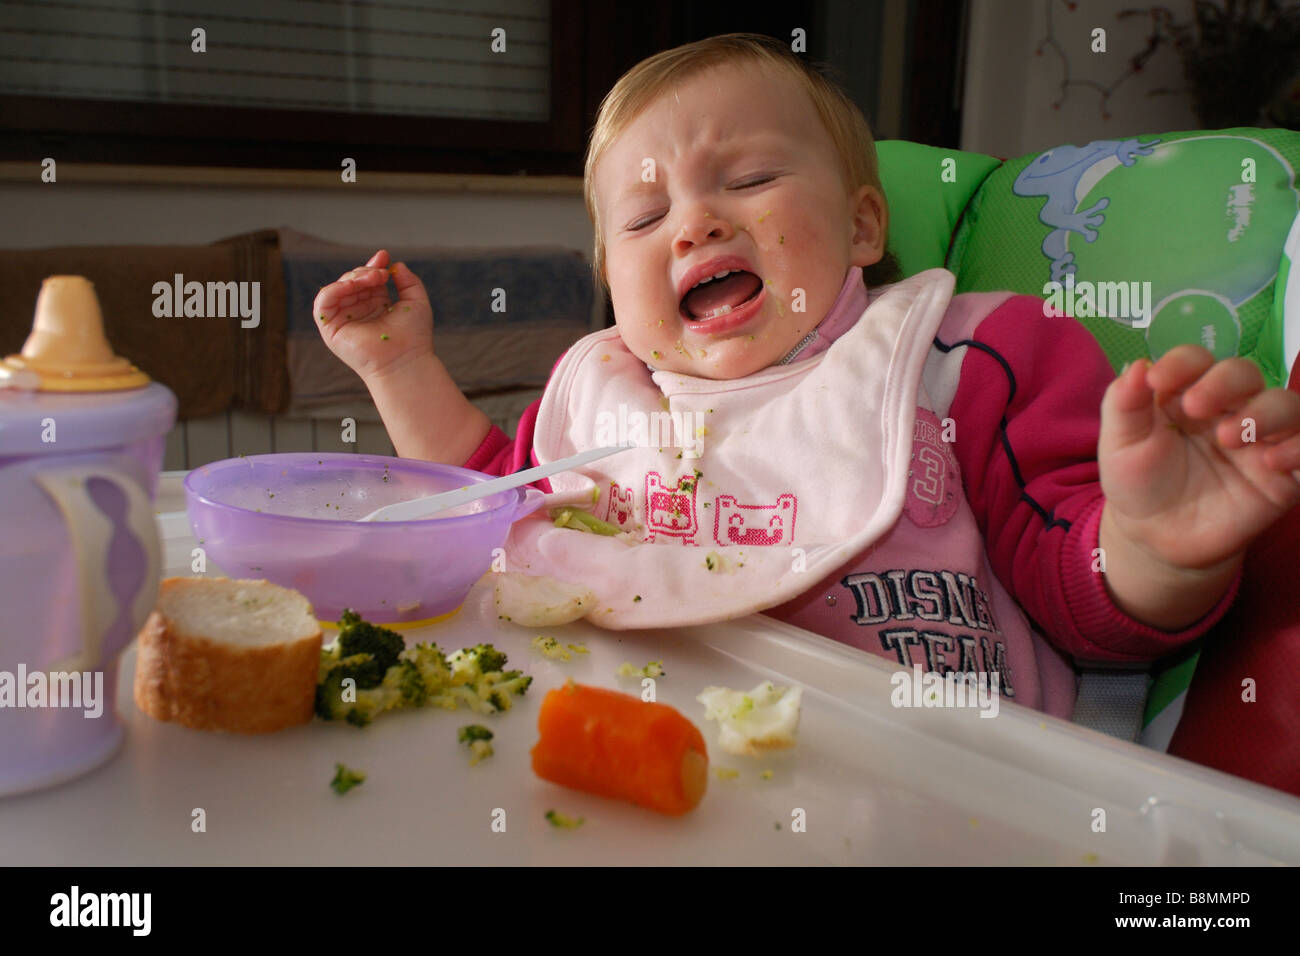 One year old baby girl crying in highchair at meal time for 1 year old not eating table food